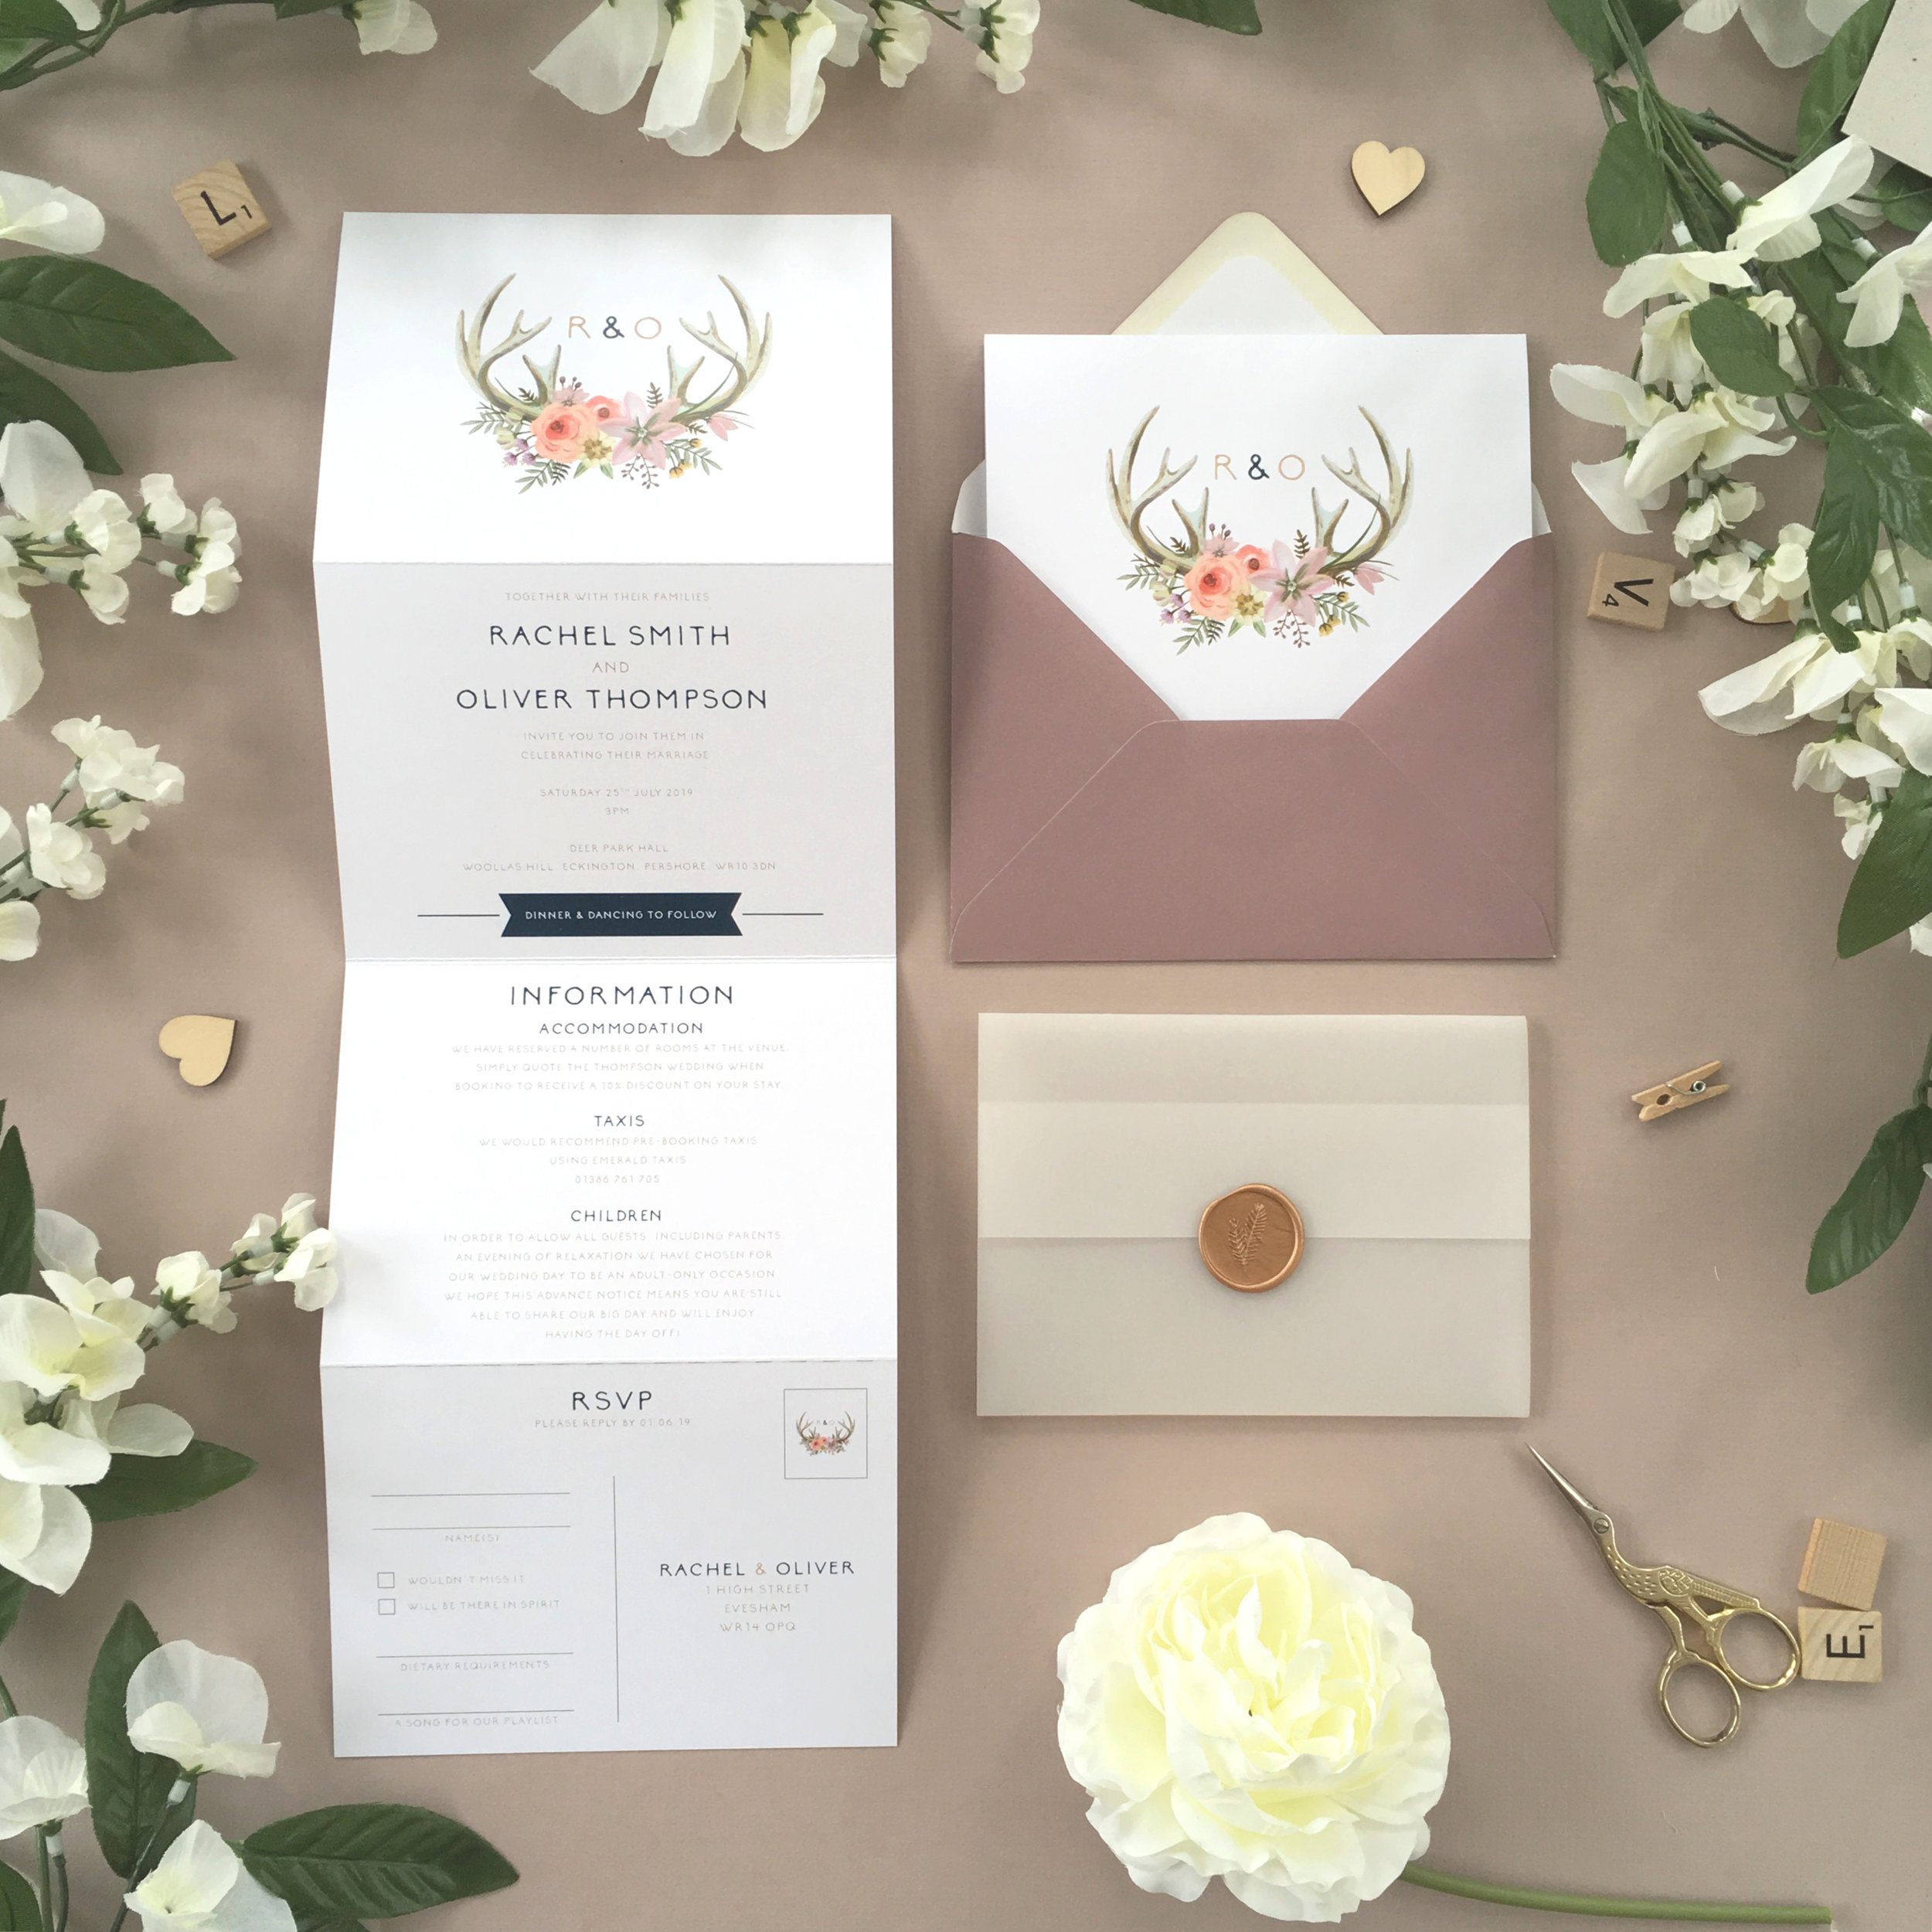 Epping - Our Epping collection uses a simple, unfussy and Boho theme with floral antlers as part of it's theme on this concertina invitation.Our concertina invitations are a great all-in-one solution, with a detachable RSVP at the bottom of the invitation - all guests need to do is fill in their details, put a stamp in the corner and post!Concertina invitations can be provided on an as-is basis, or can be provided bound with a vellum jacket and timeless wax seal, or tied with ribbon or twine for a lovely hand-finished approach.- Concertina Invitation - from £1.95- Ribbon or Twine - £0.40- Vellum Jacket - £0.40- Wax Seal - £0.85 (Custom engraving also available)White envelope provided as standard with coloured upgrade available.